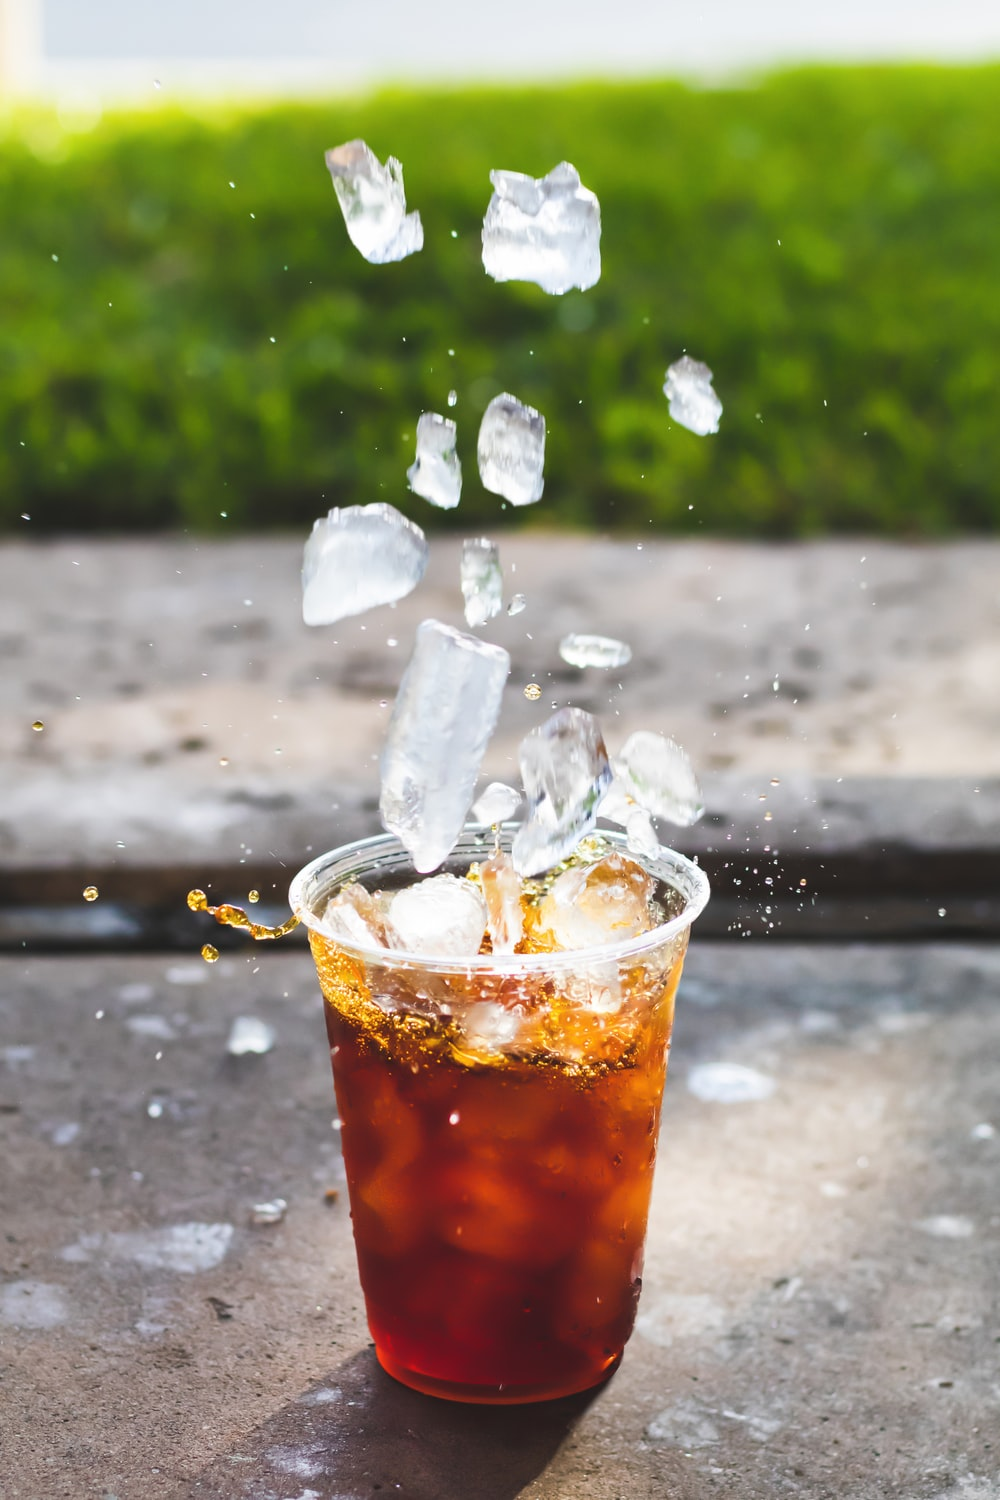 macro photography of dropping ice cube in cup